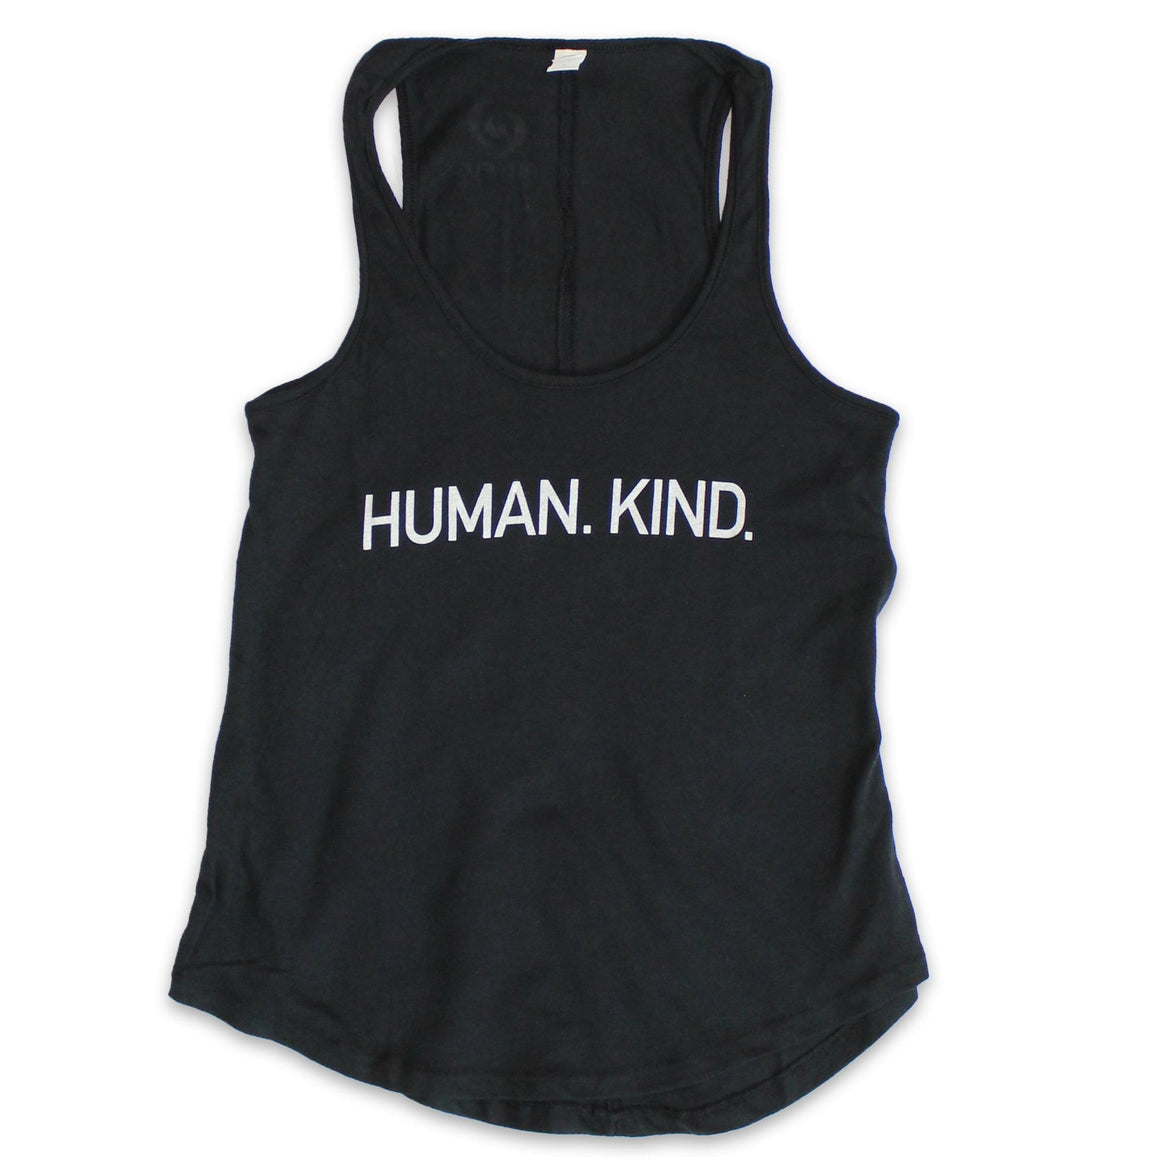 Women's Black Tank with White Human.Kind.